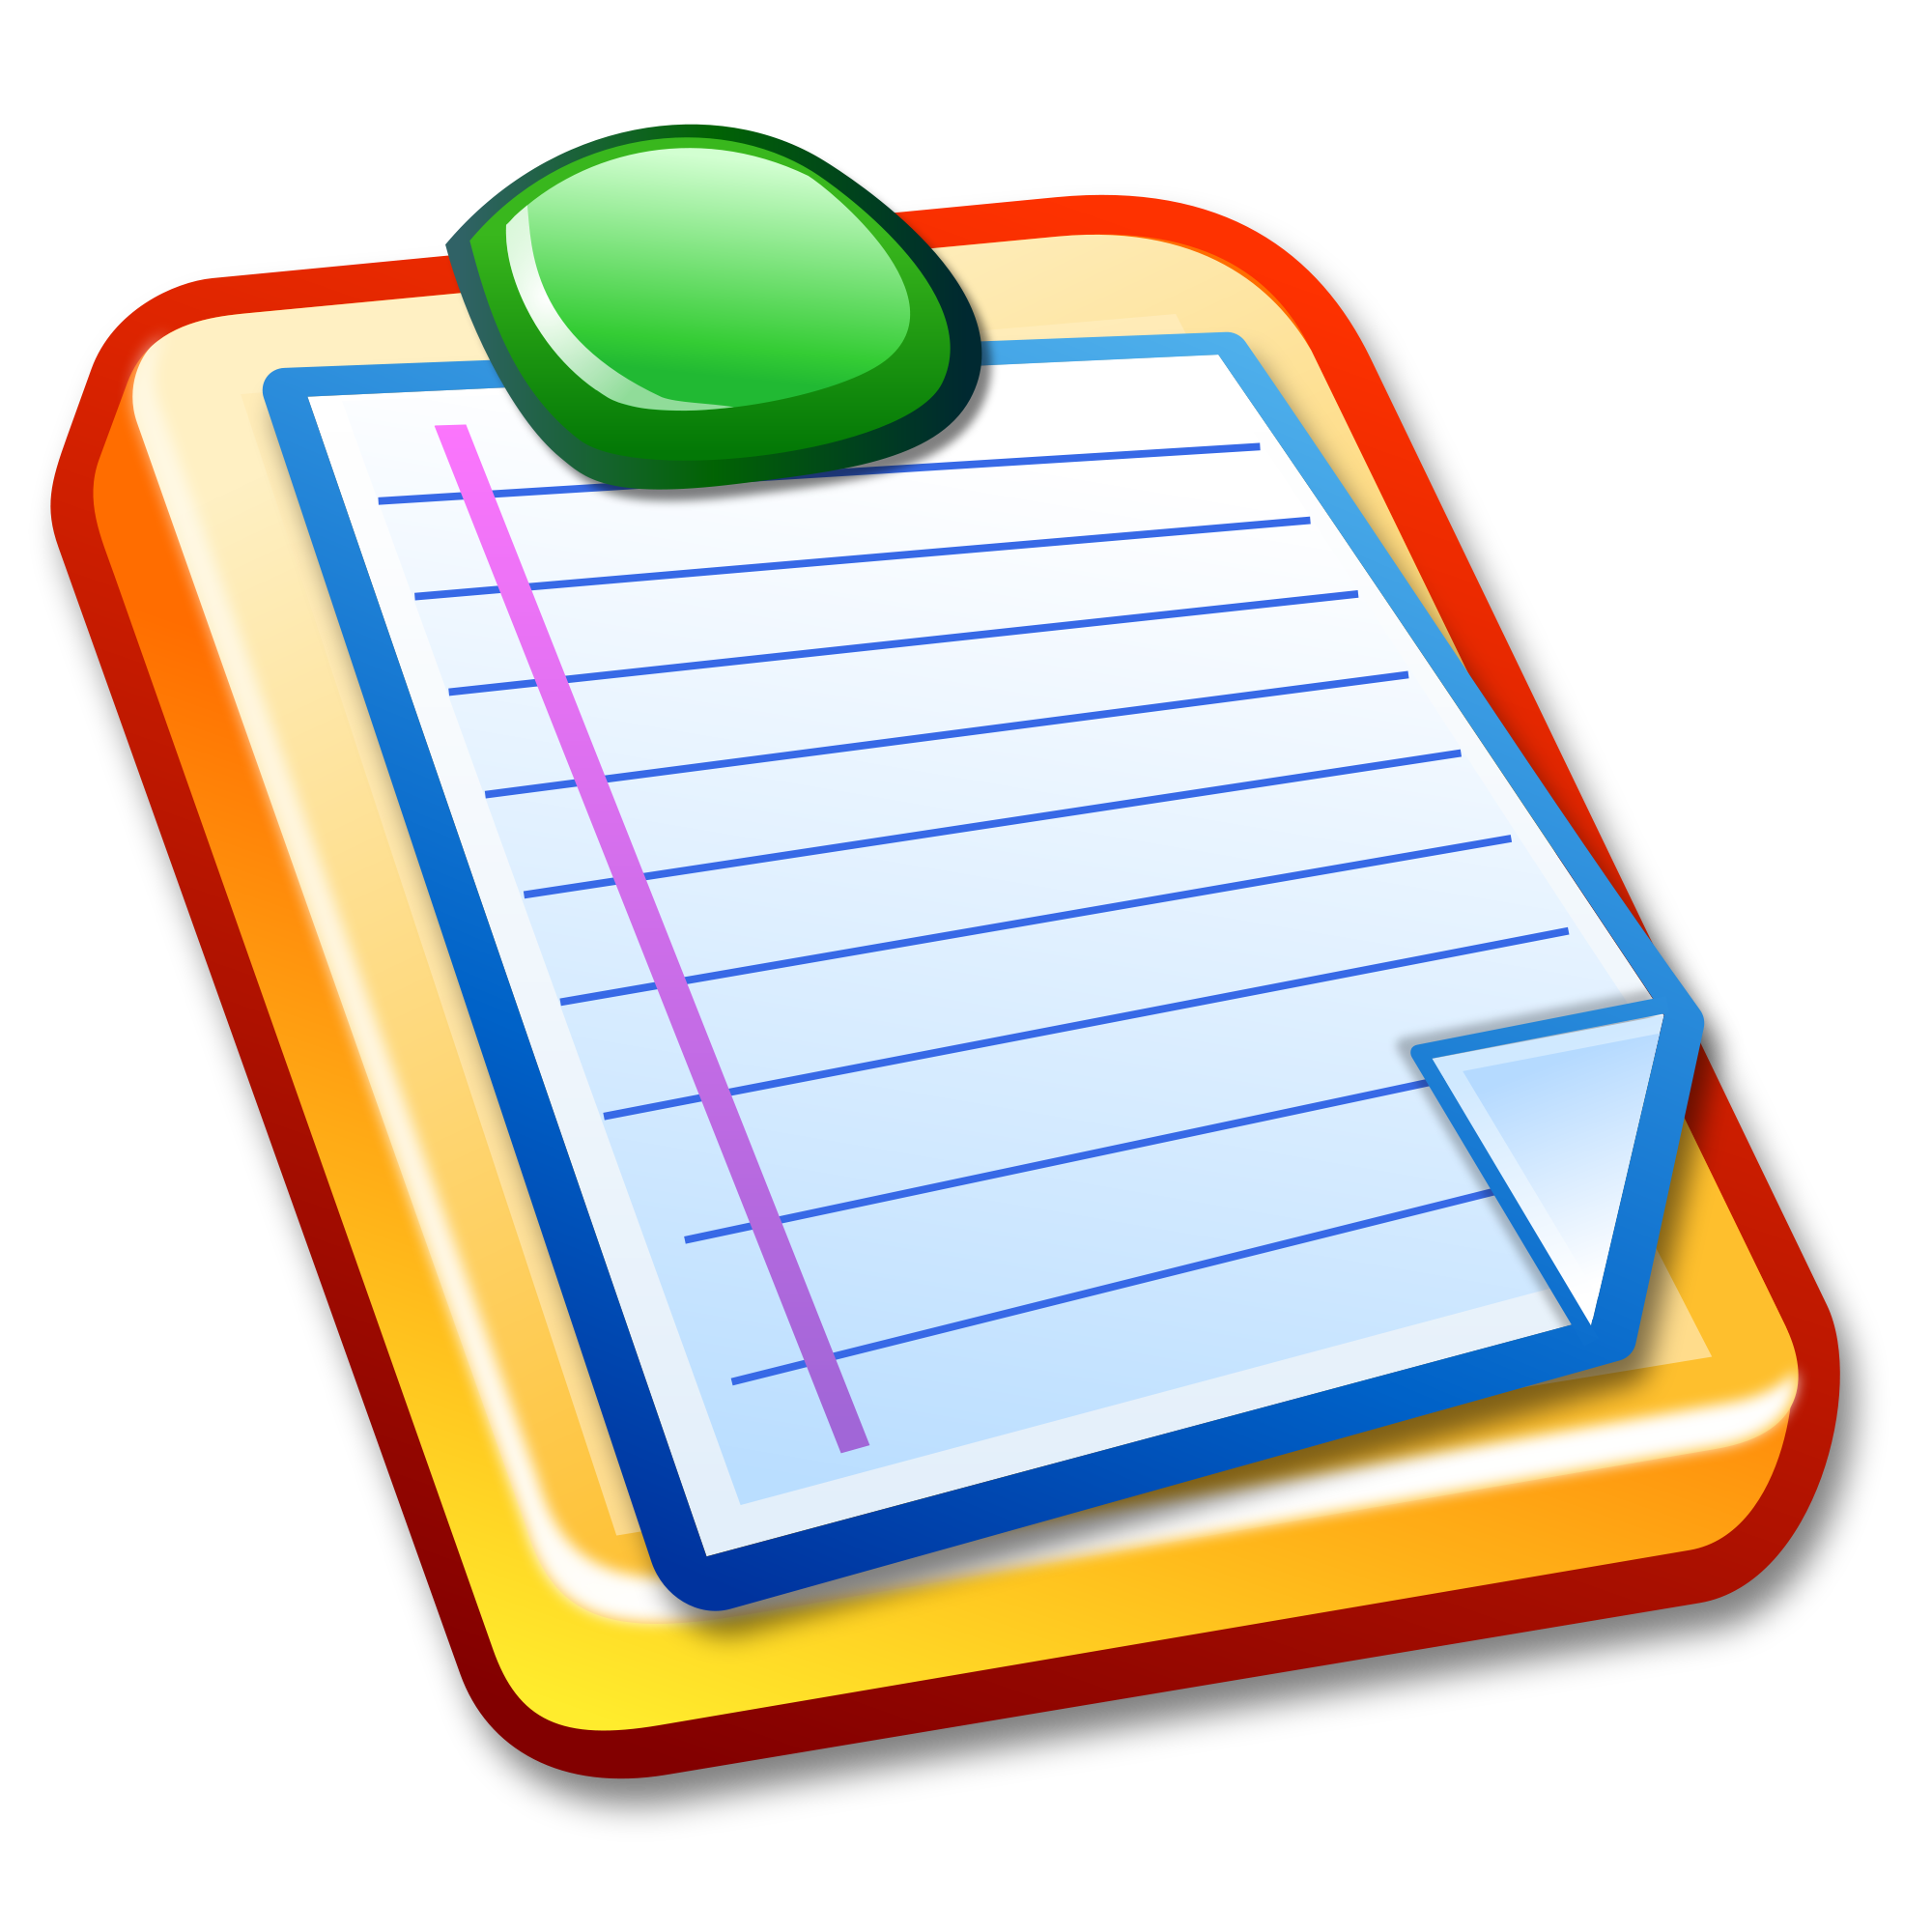 Clipboard clipart lined paper. File nuvola svg wikimedia